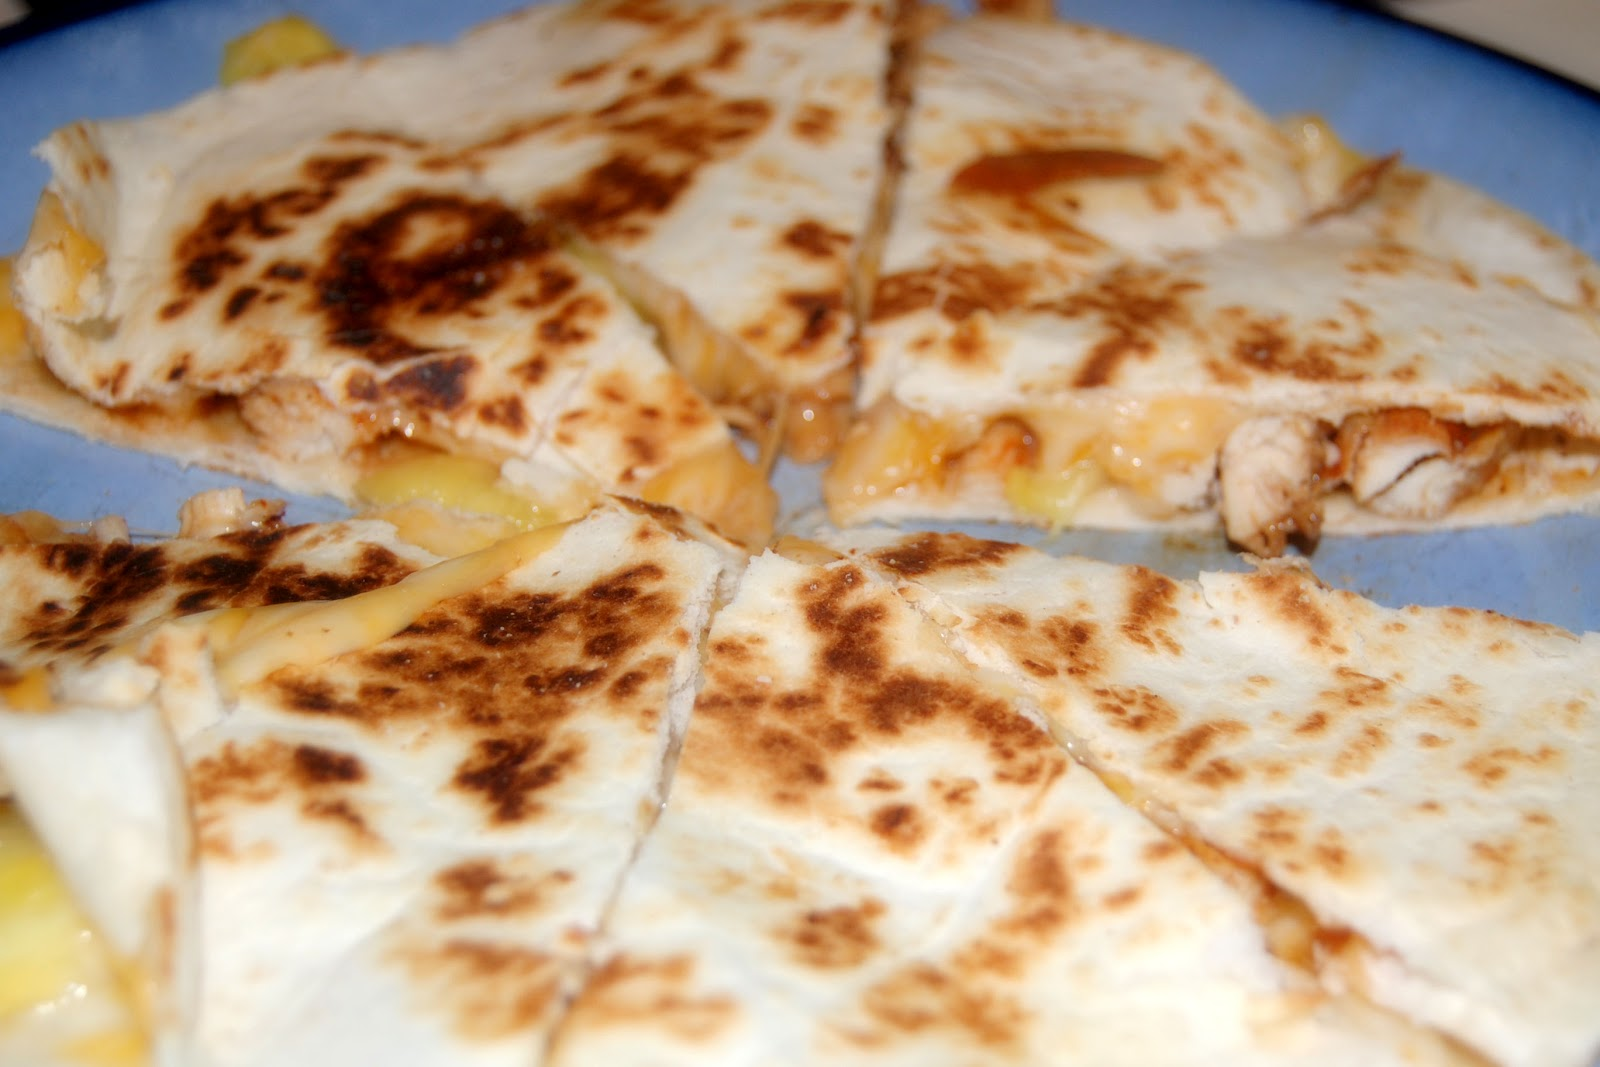 Home Cooking Mama: Grilled Pineapple & Chicken Quesadilla